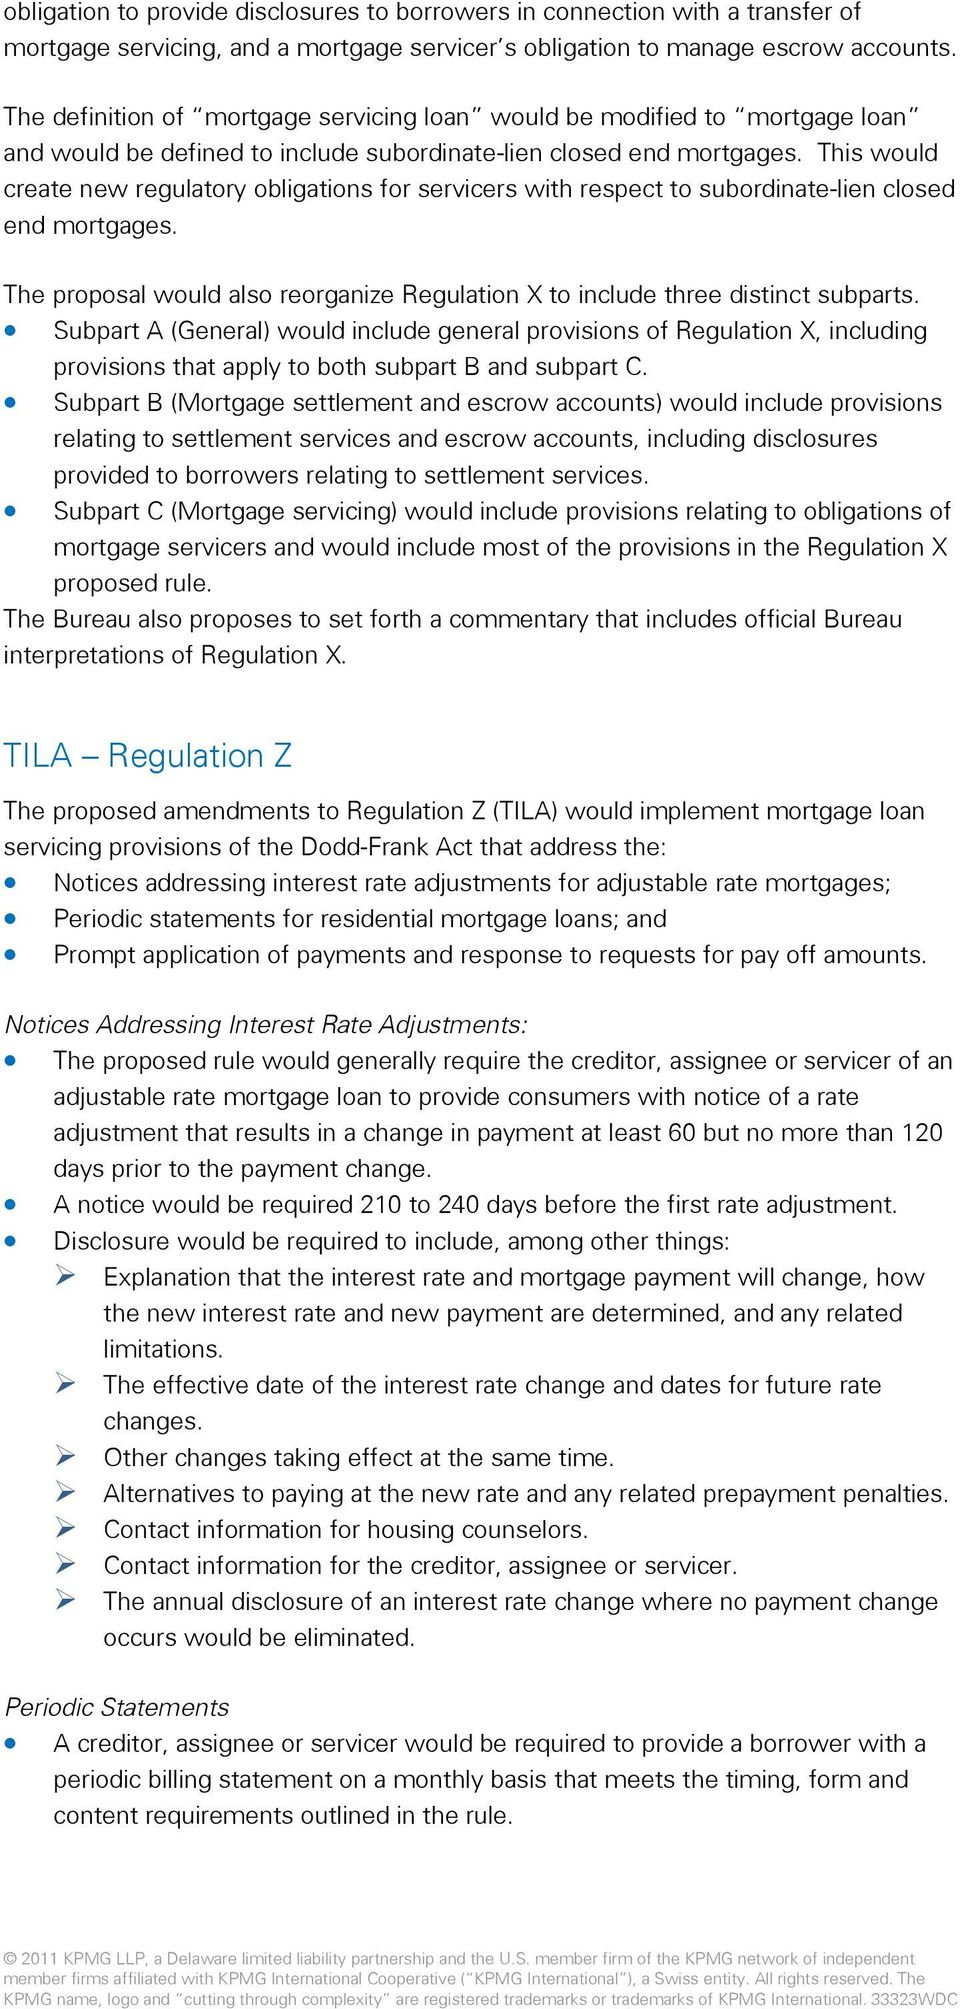 This would create new regulatory obligations for servicers with respect to subordinate-lien closed end mortgages. The proposal would also reorganize Regulation X to include three distinct subparts.